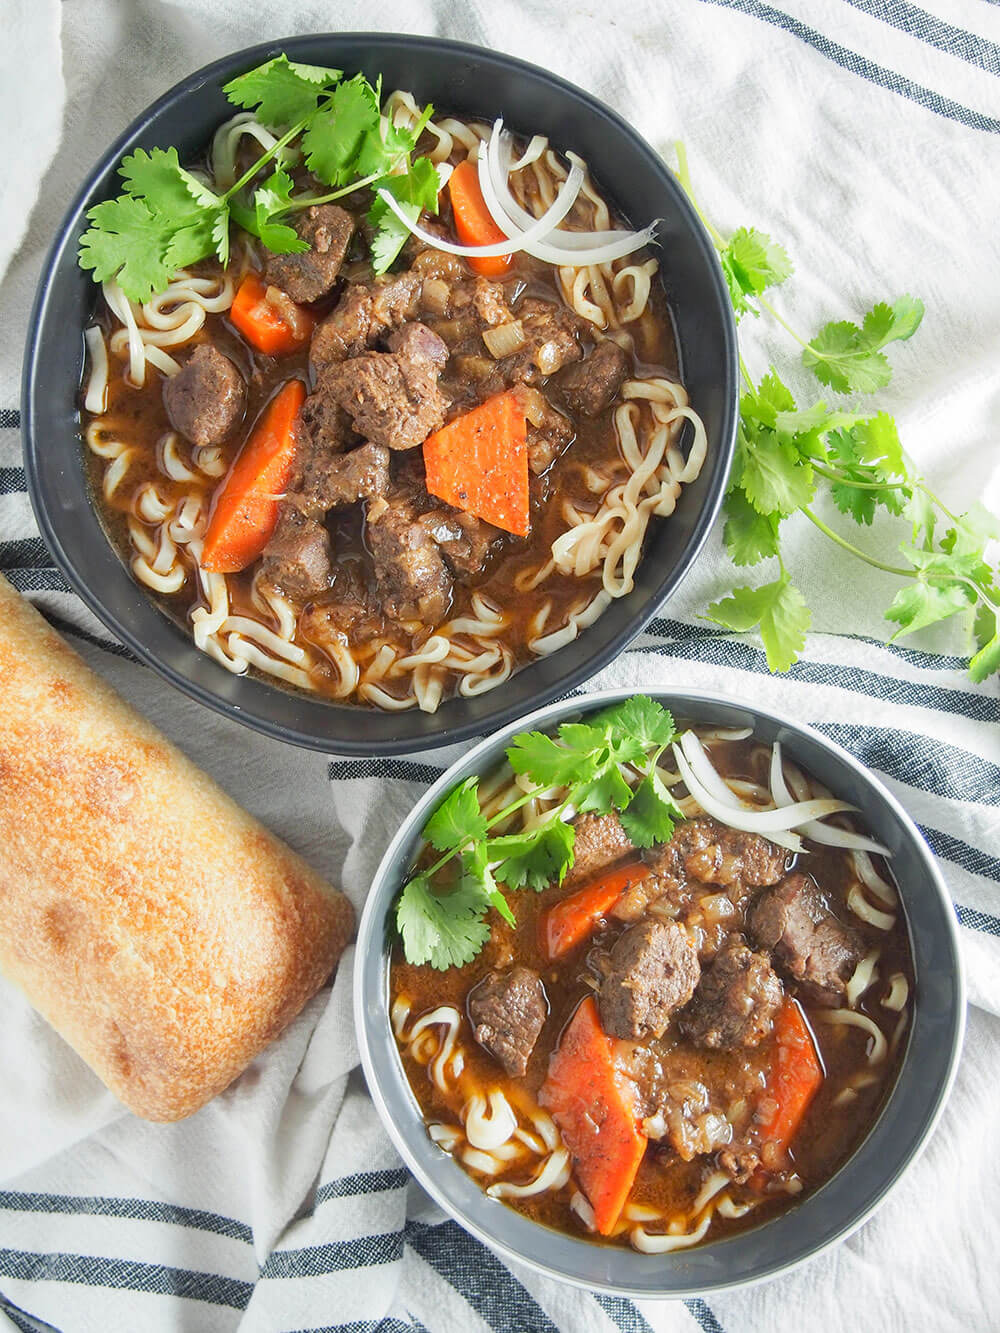 bo kho Vietnamese beef stew over noodles with bread on the side